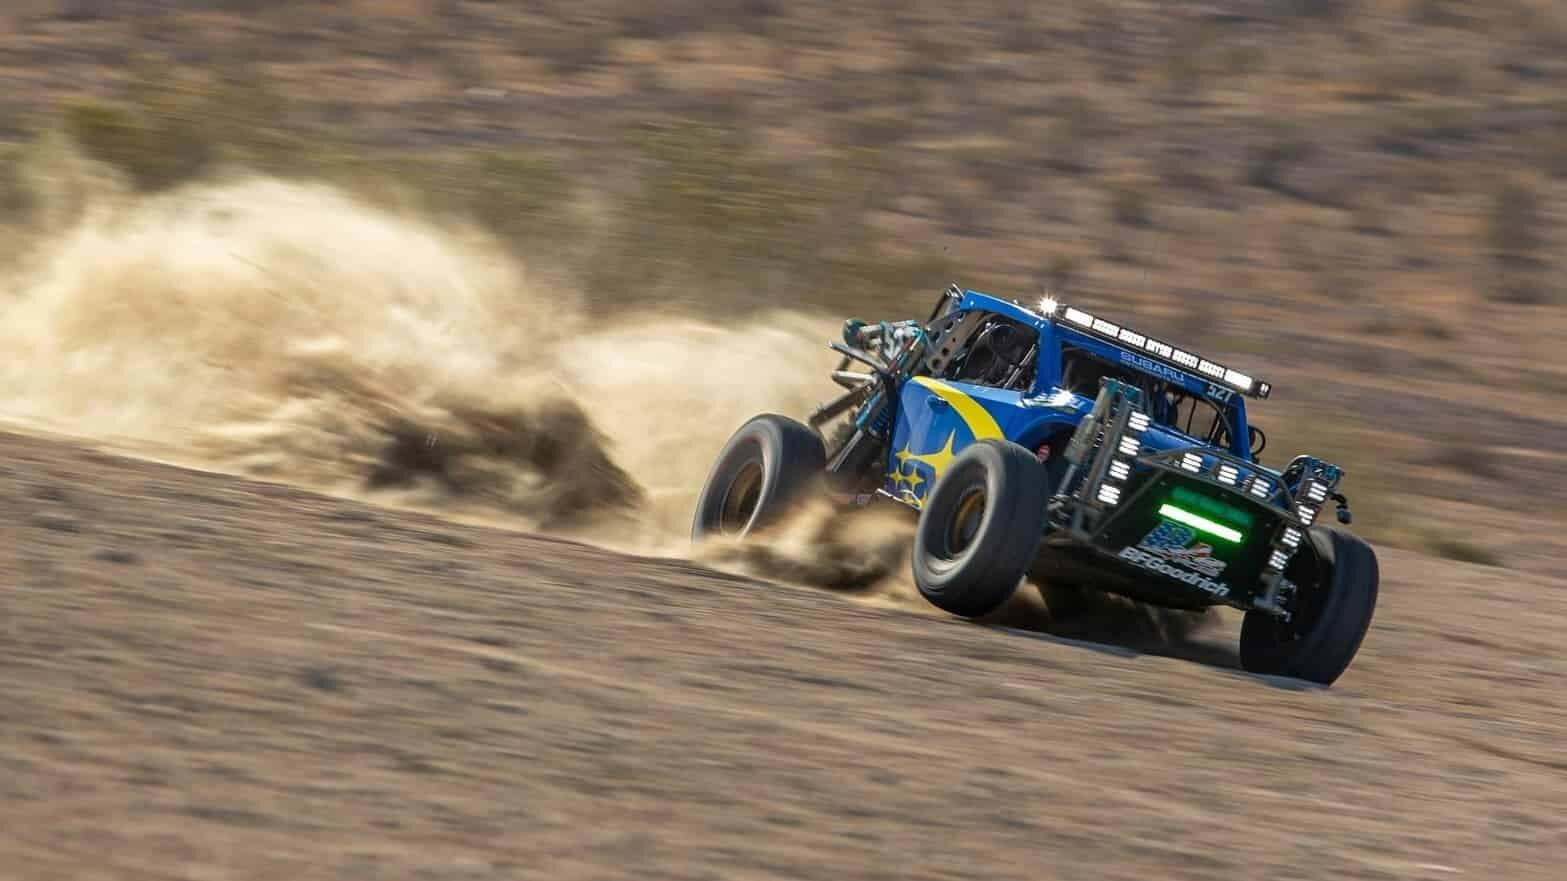 Subaru's Baja racer is the coolest thing you'll see today